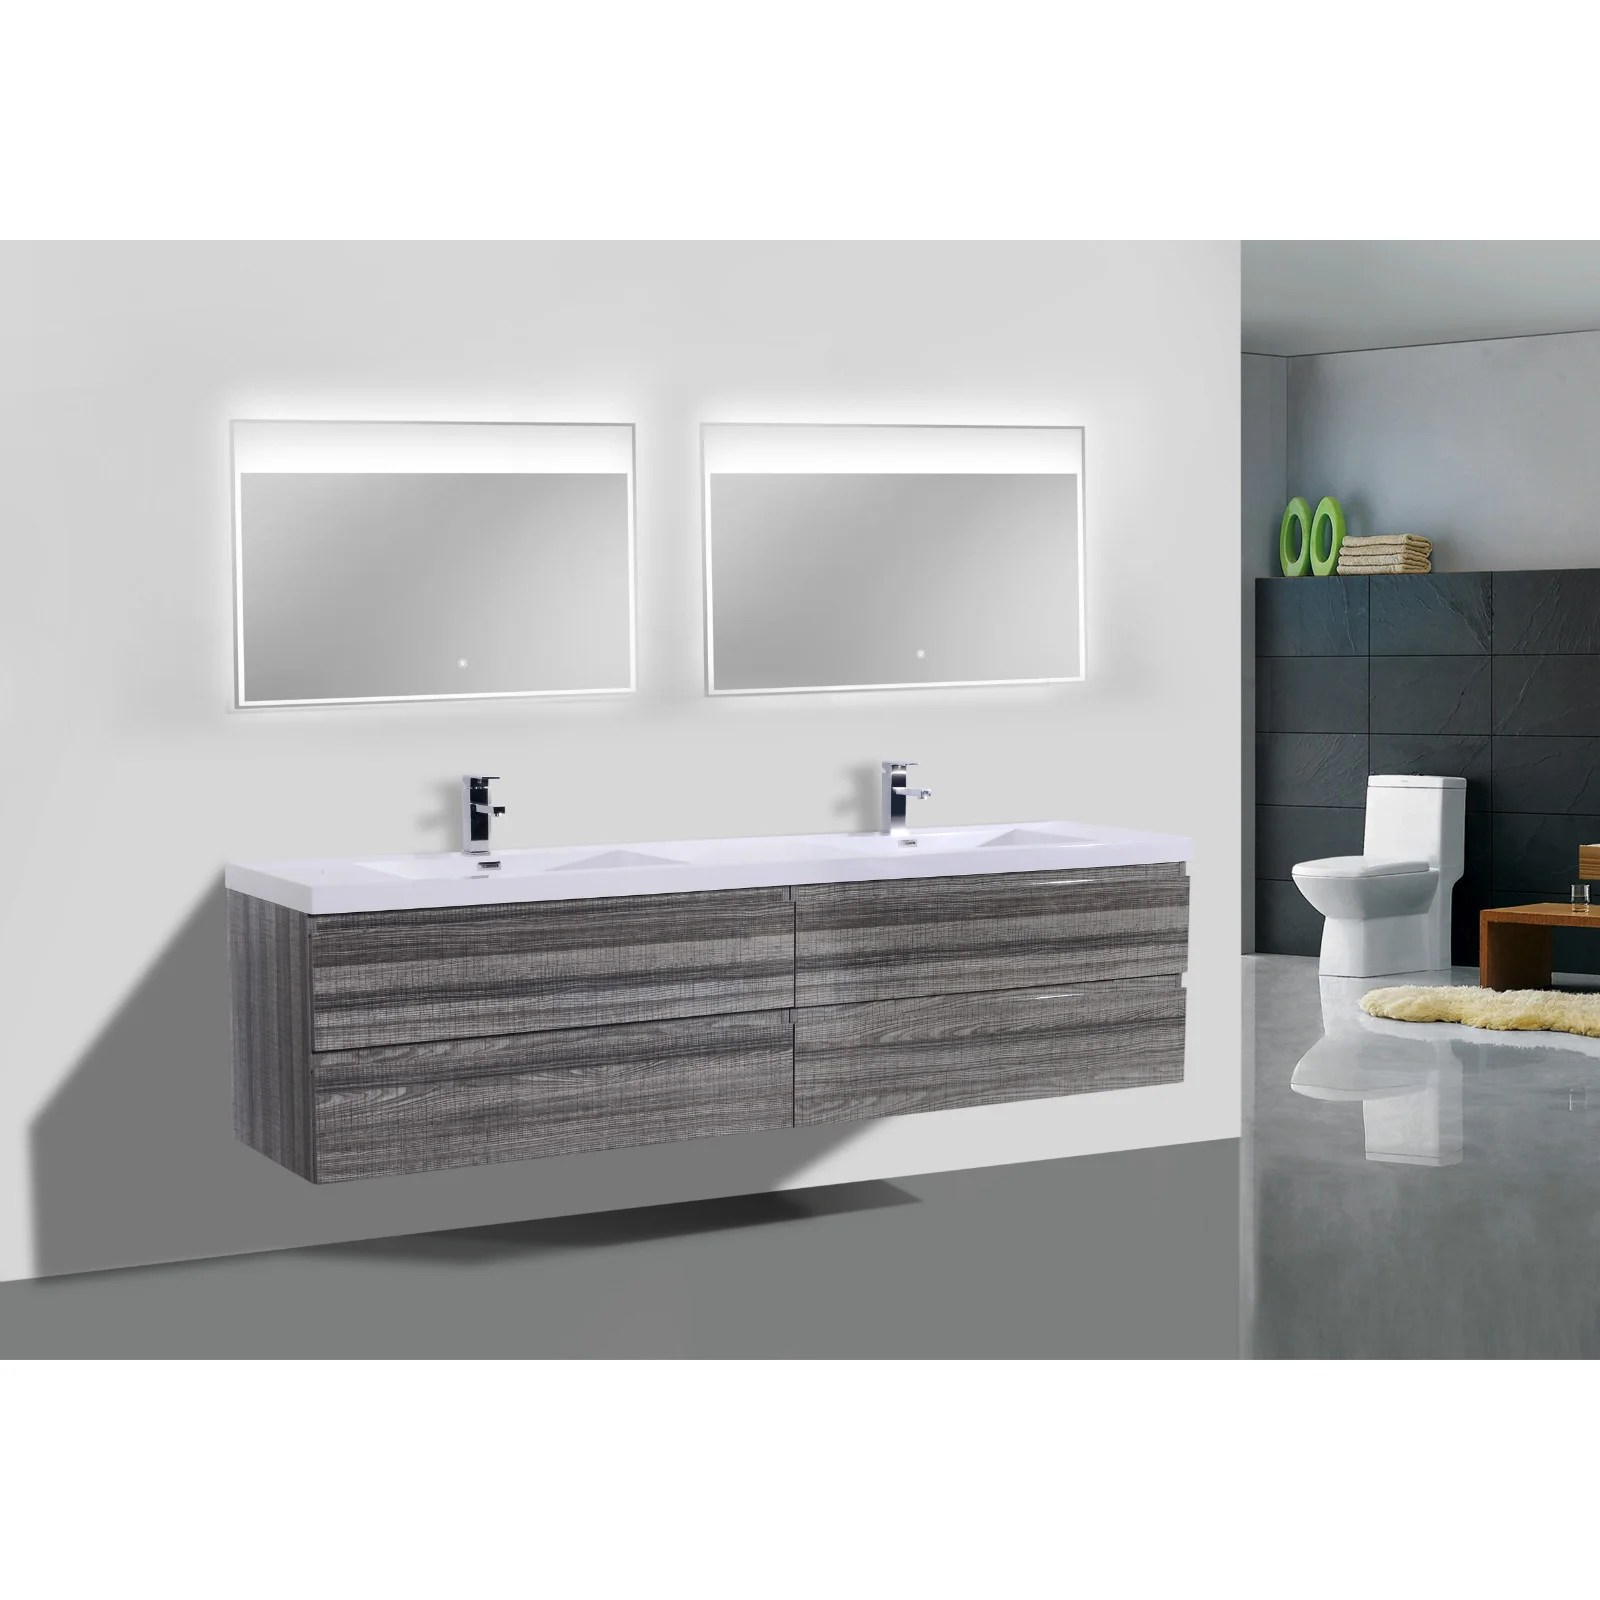 Wall Mount Double Vanity Moreno Bath Mob 72 Inch Wall Mounted Modern Bathroom Double Vanity With Reinforced Acrylic Sinks